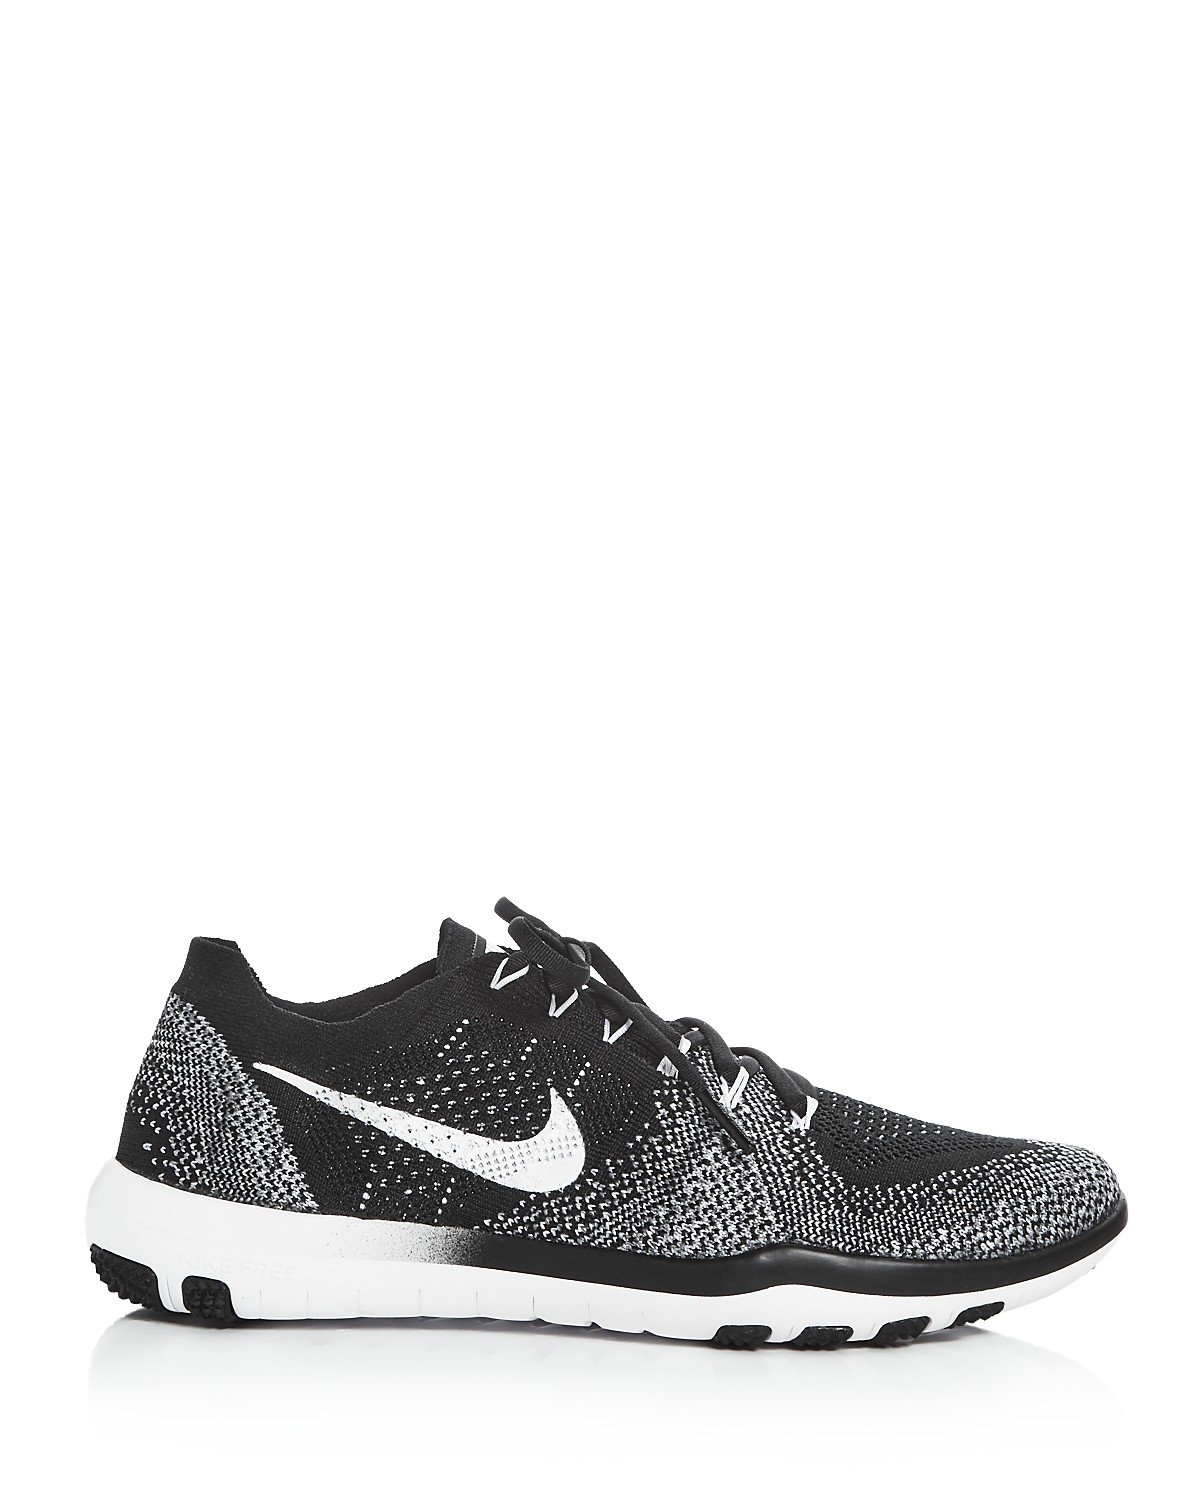 f7e493f9daea41 Galleon - NIKE Free Focus Flyknit 2 Size 10 Womens Cross Training Shoe White  Black-Wolf Grey Shoes